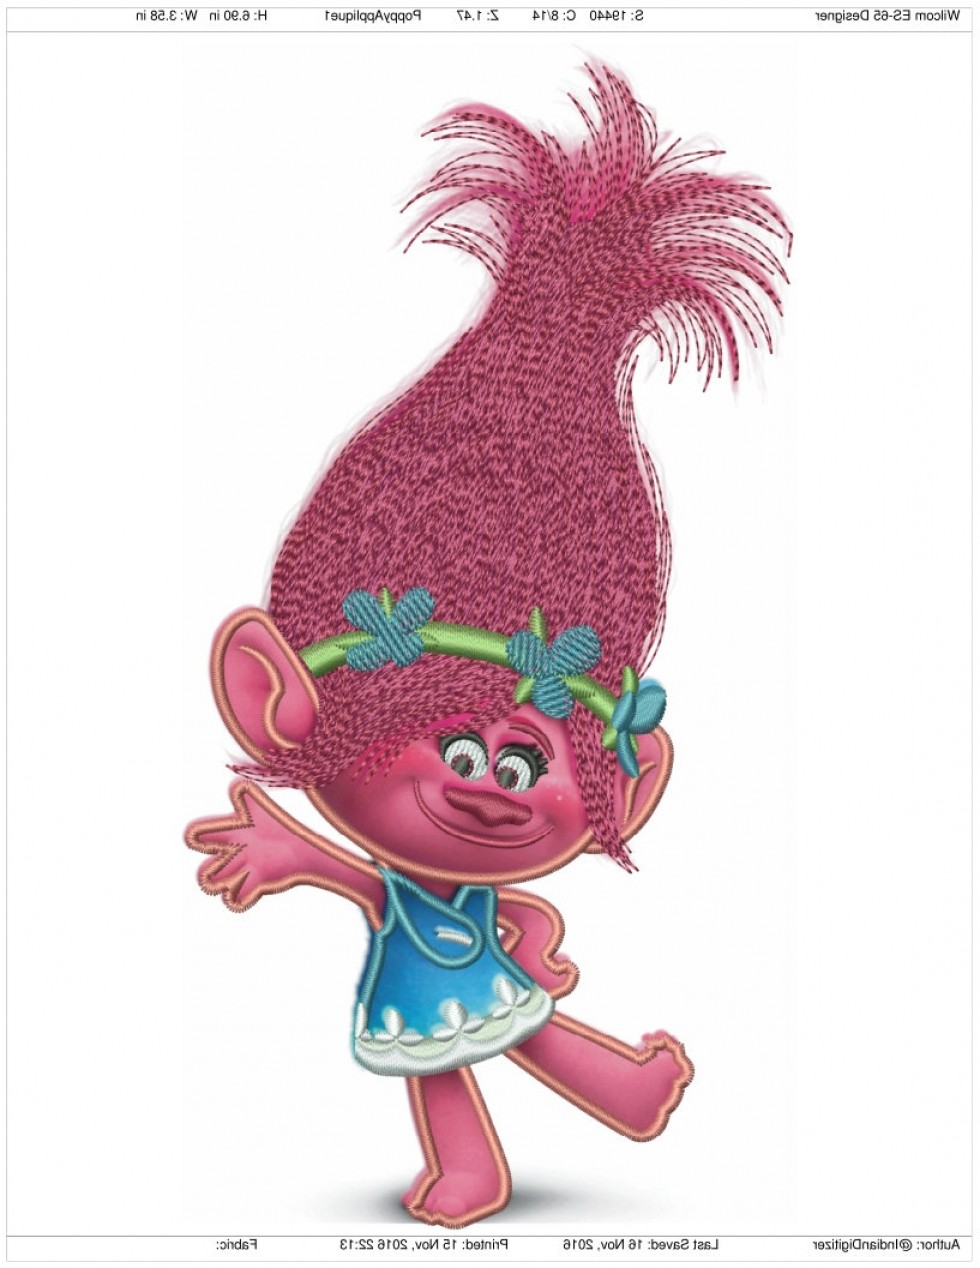 Trolls Poppy And Branch Vector Art: Princess Poppy Trolls Applique Inches Tall Machine Embroidery Design